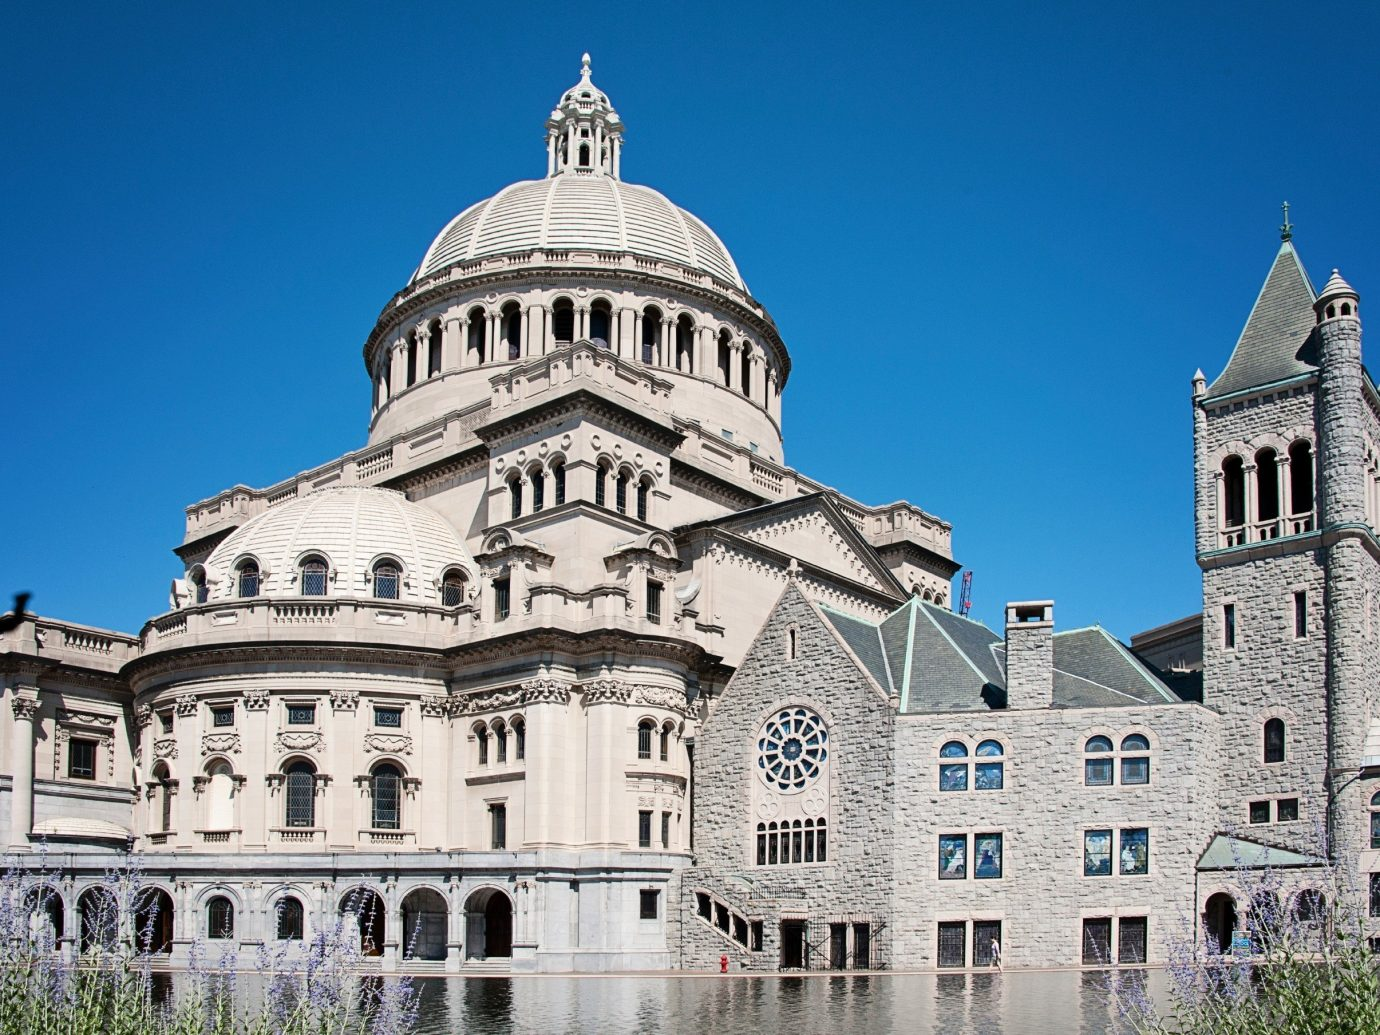 Budget building outdoor landmark historic site château Architecture facade cathedral tourism place of worship palace stately home estate basilica Church government building old